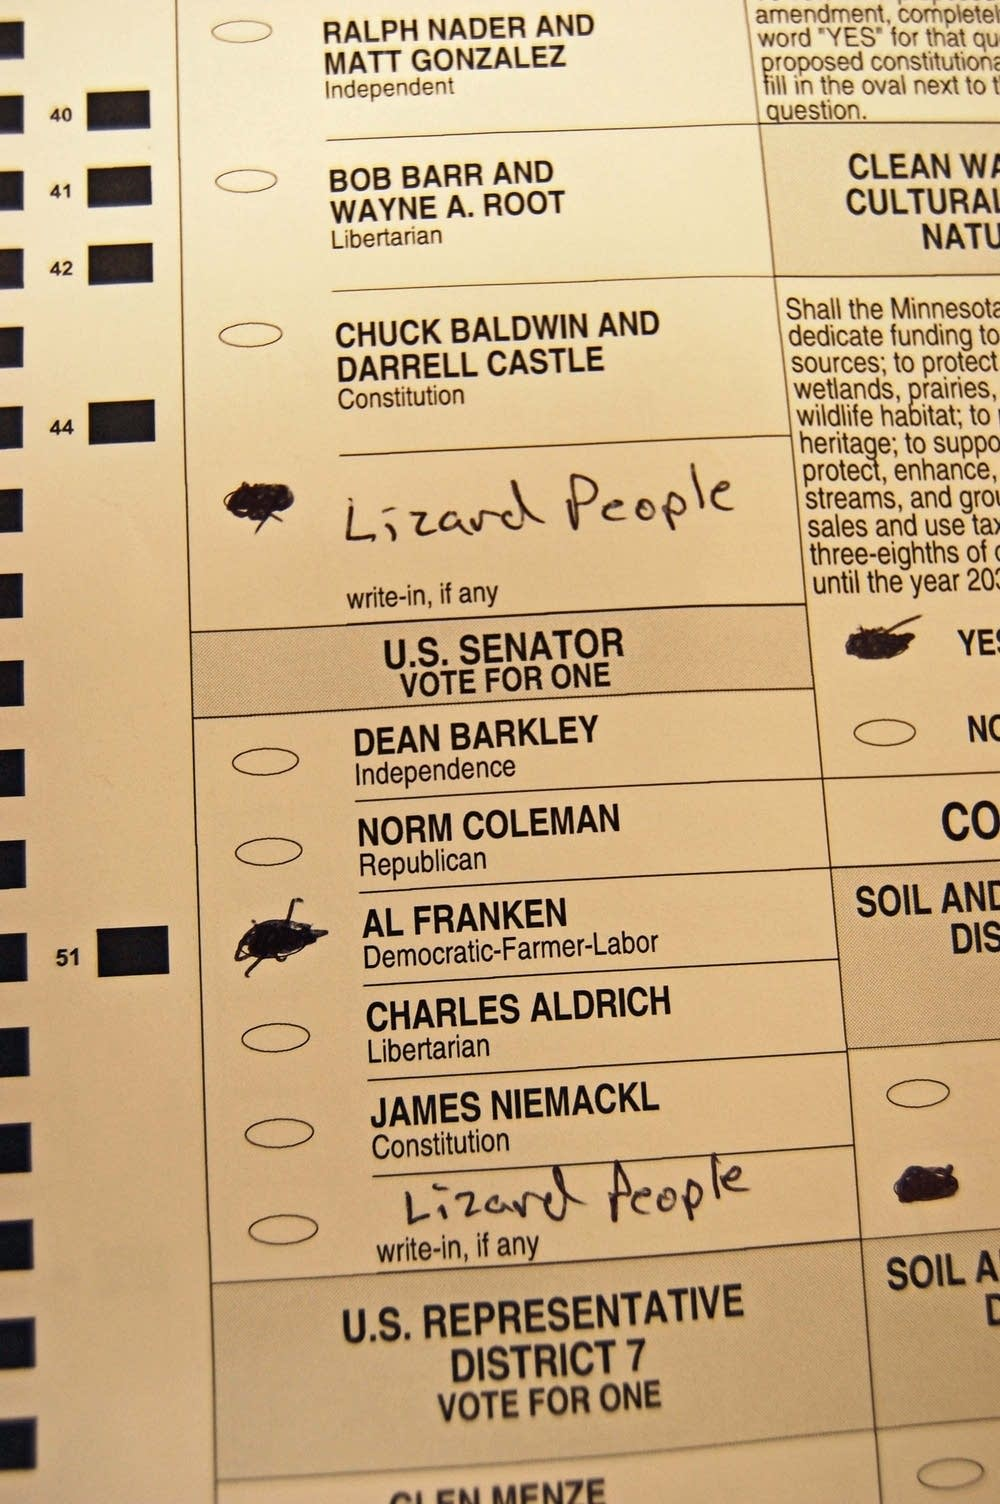 Lizard People ballot rejected